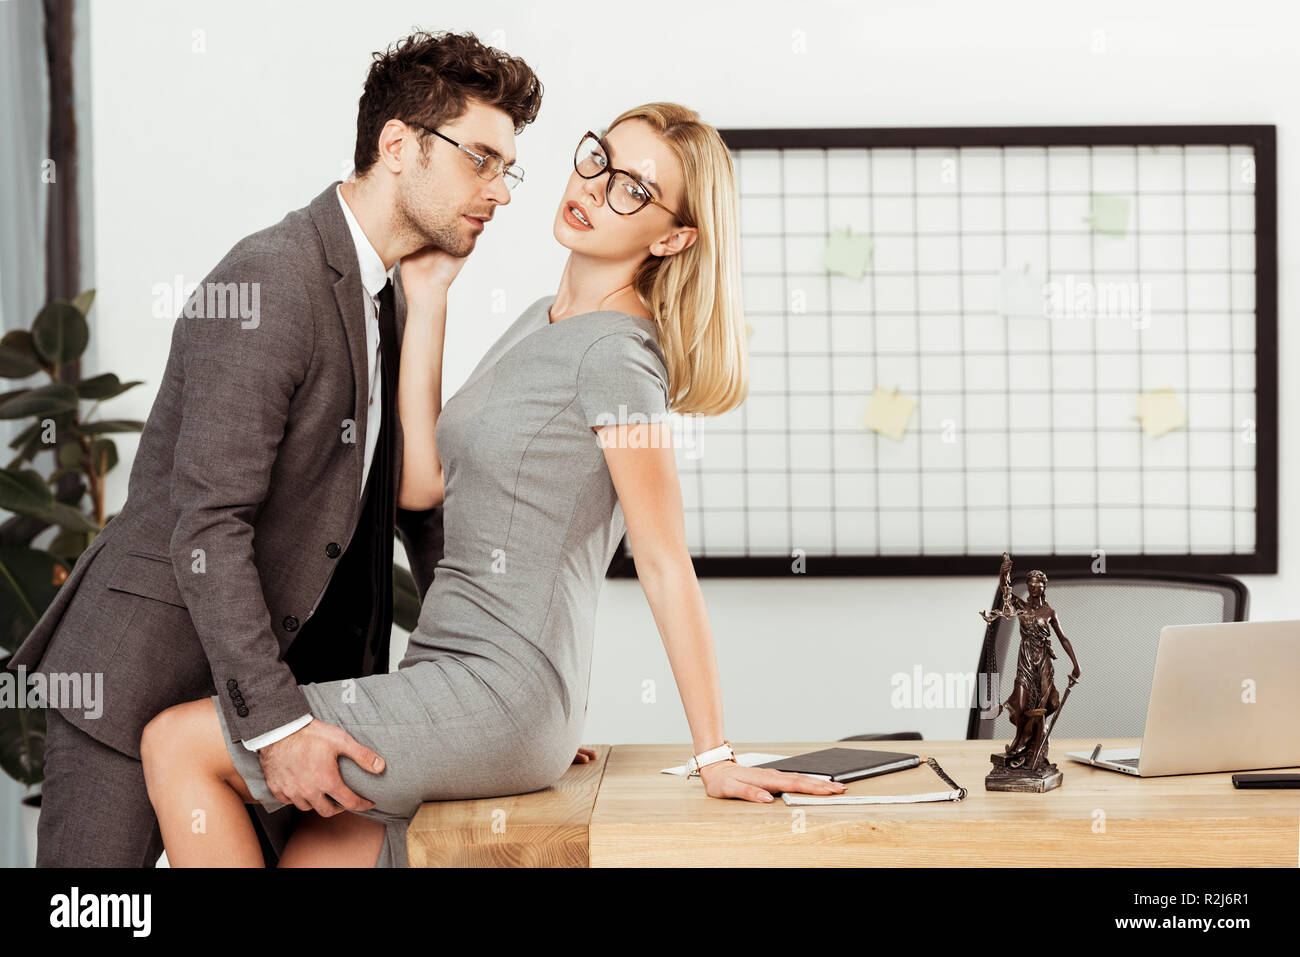 dating office colleagues